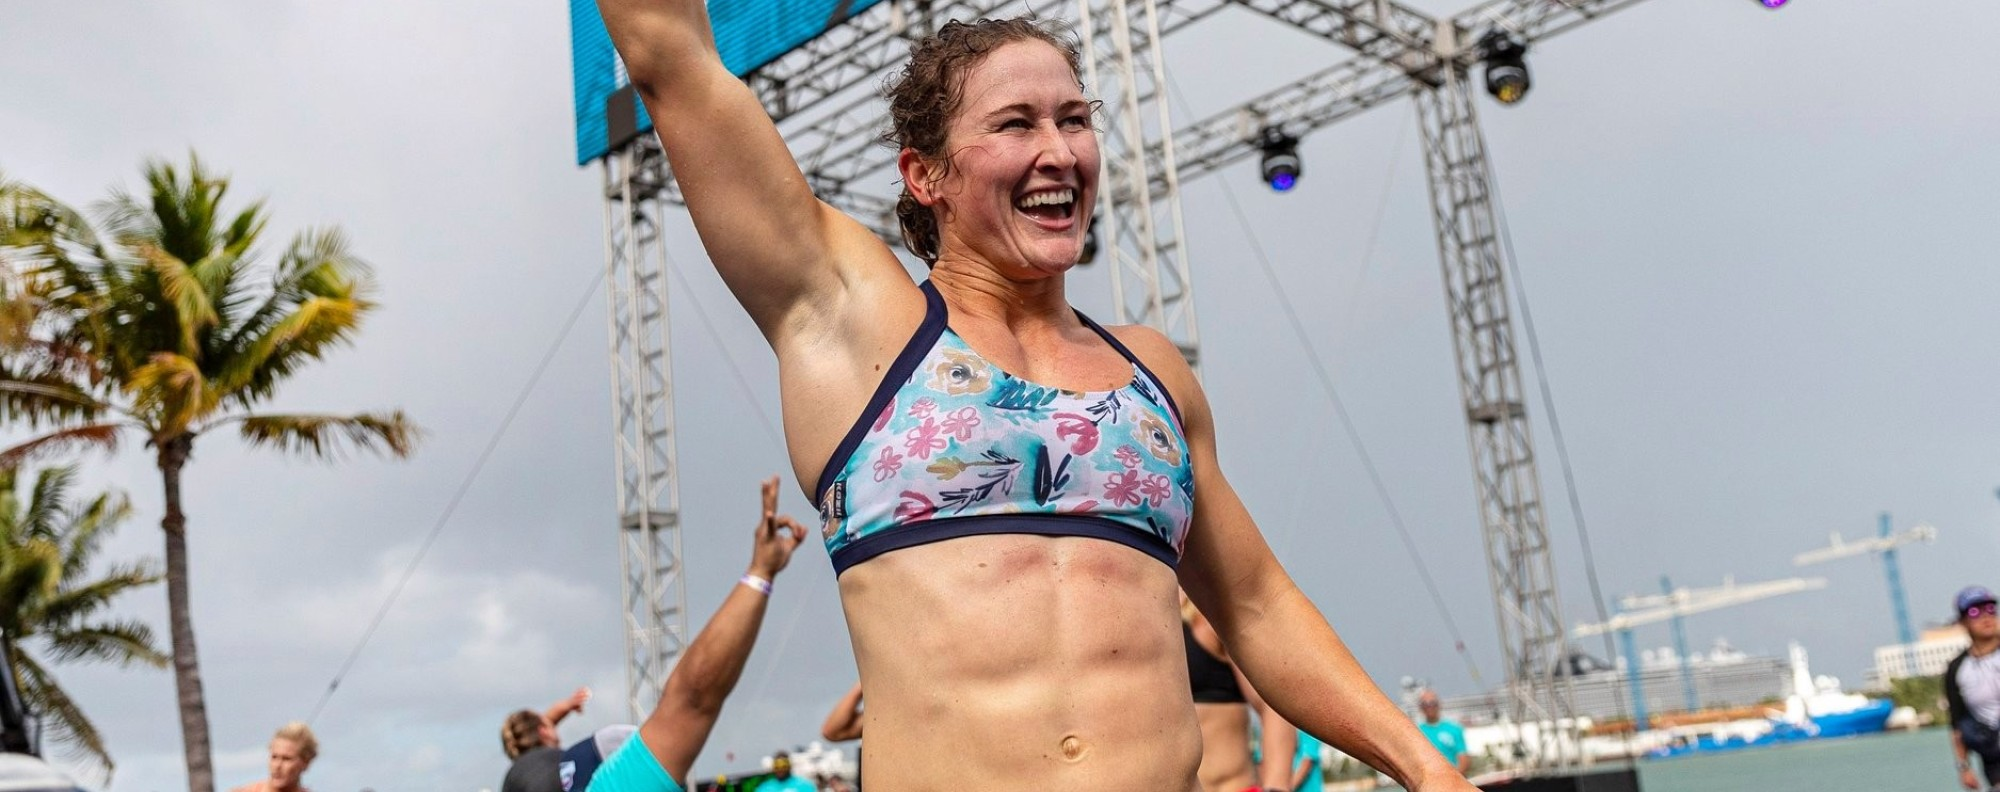 Tia-Clair Toomey showed why doubting her any more is a fool's errand. Photo: Wodapalooza